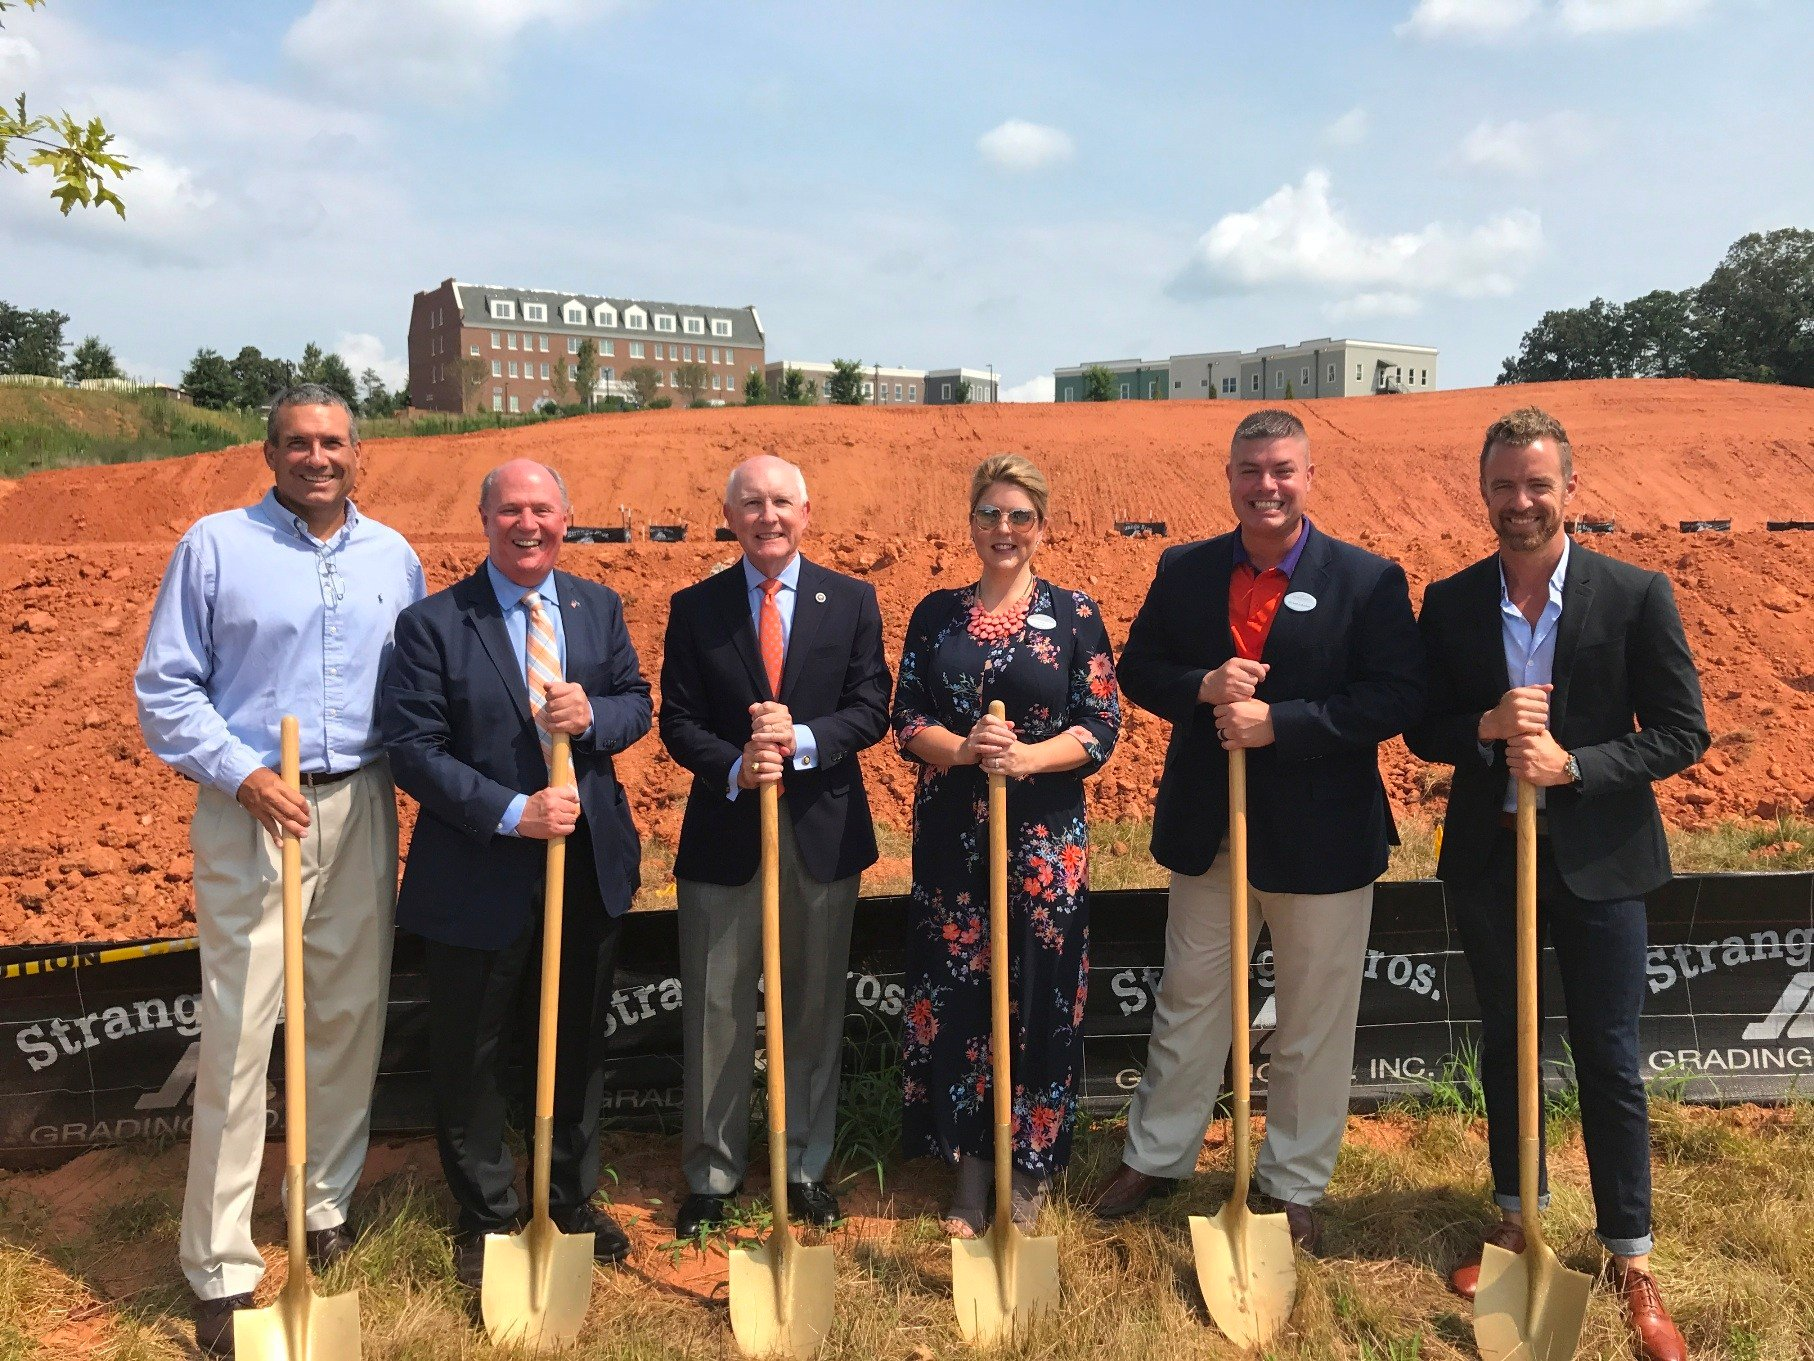 Left to Right: Rick Cotton, Clemson city administrator; Sen. Thomas Alexander; Rep. Gary Clary; Lindsey Daugherty, Principal, Role Model; Michael Holtzclaw, sr director of operations; Mark Taylor, president. (Source: The Point Group)